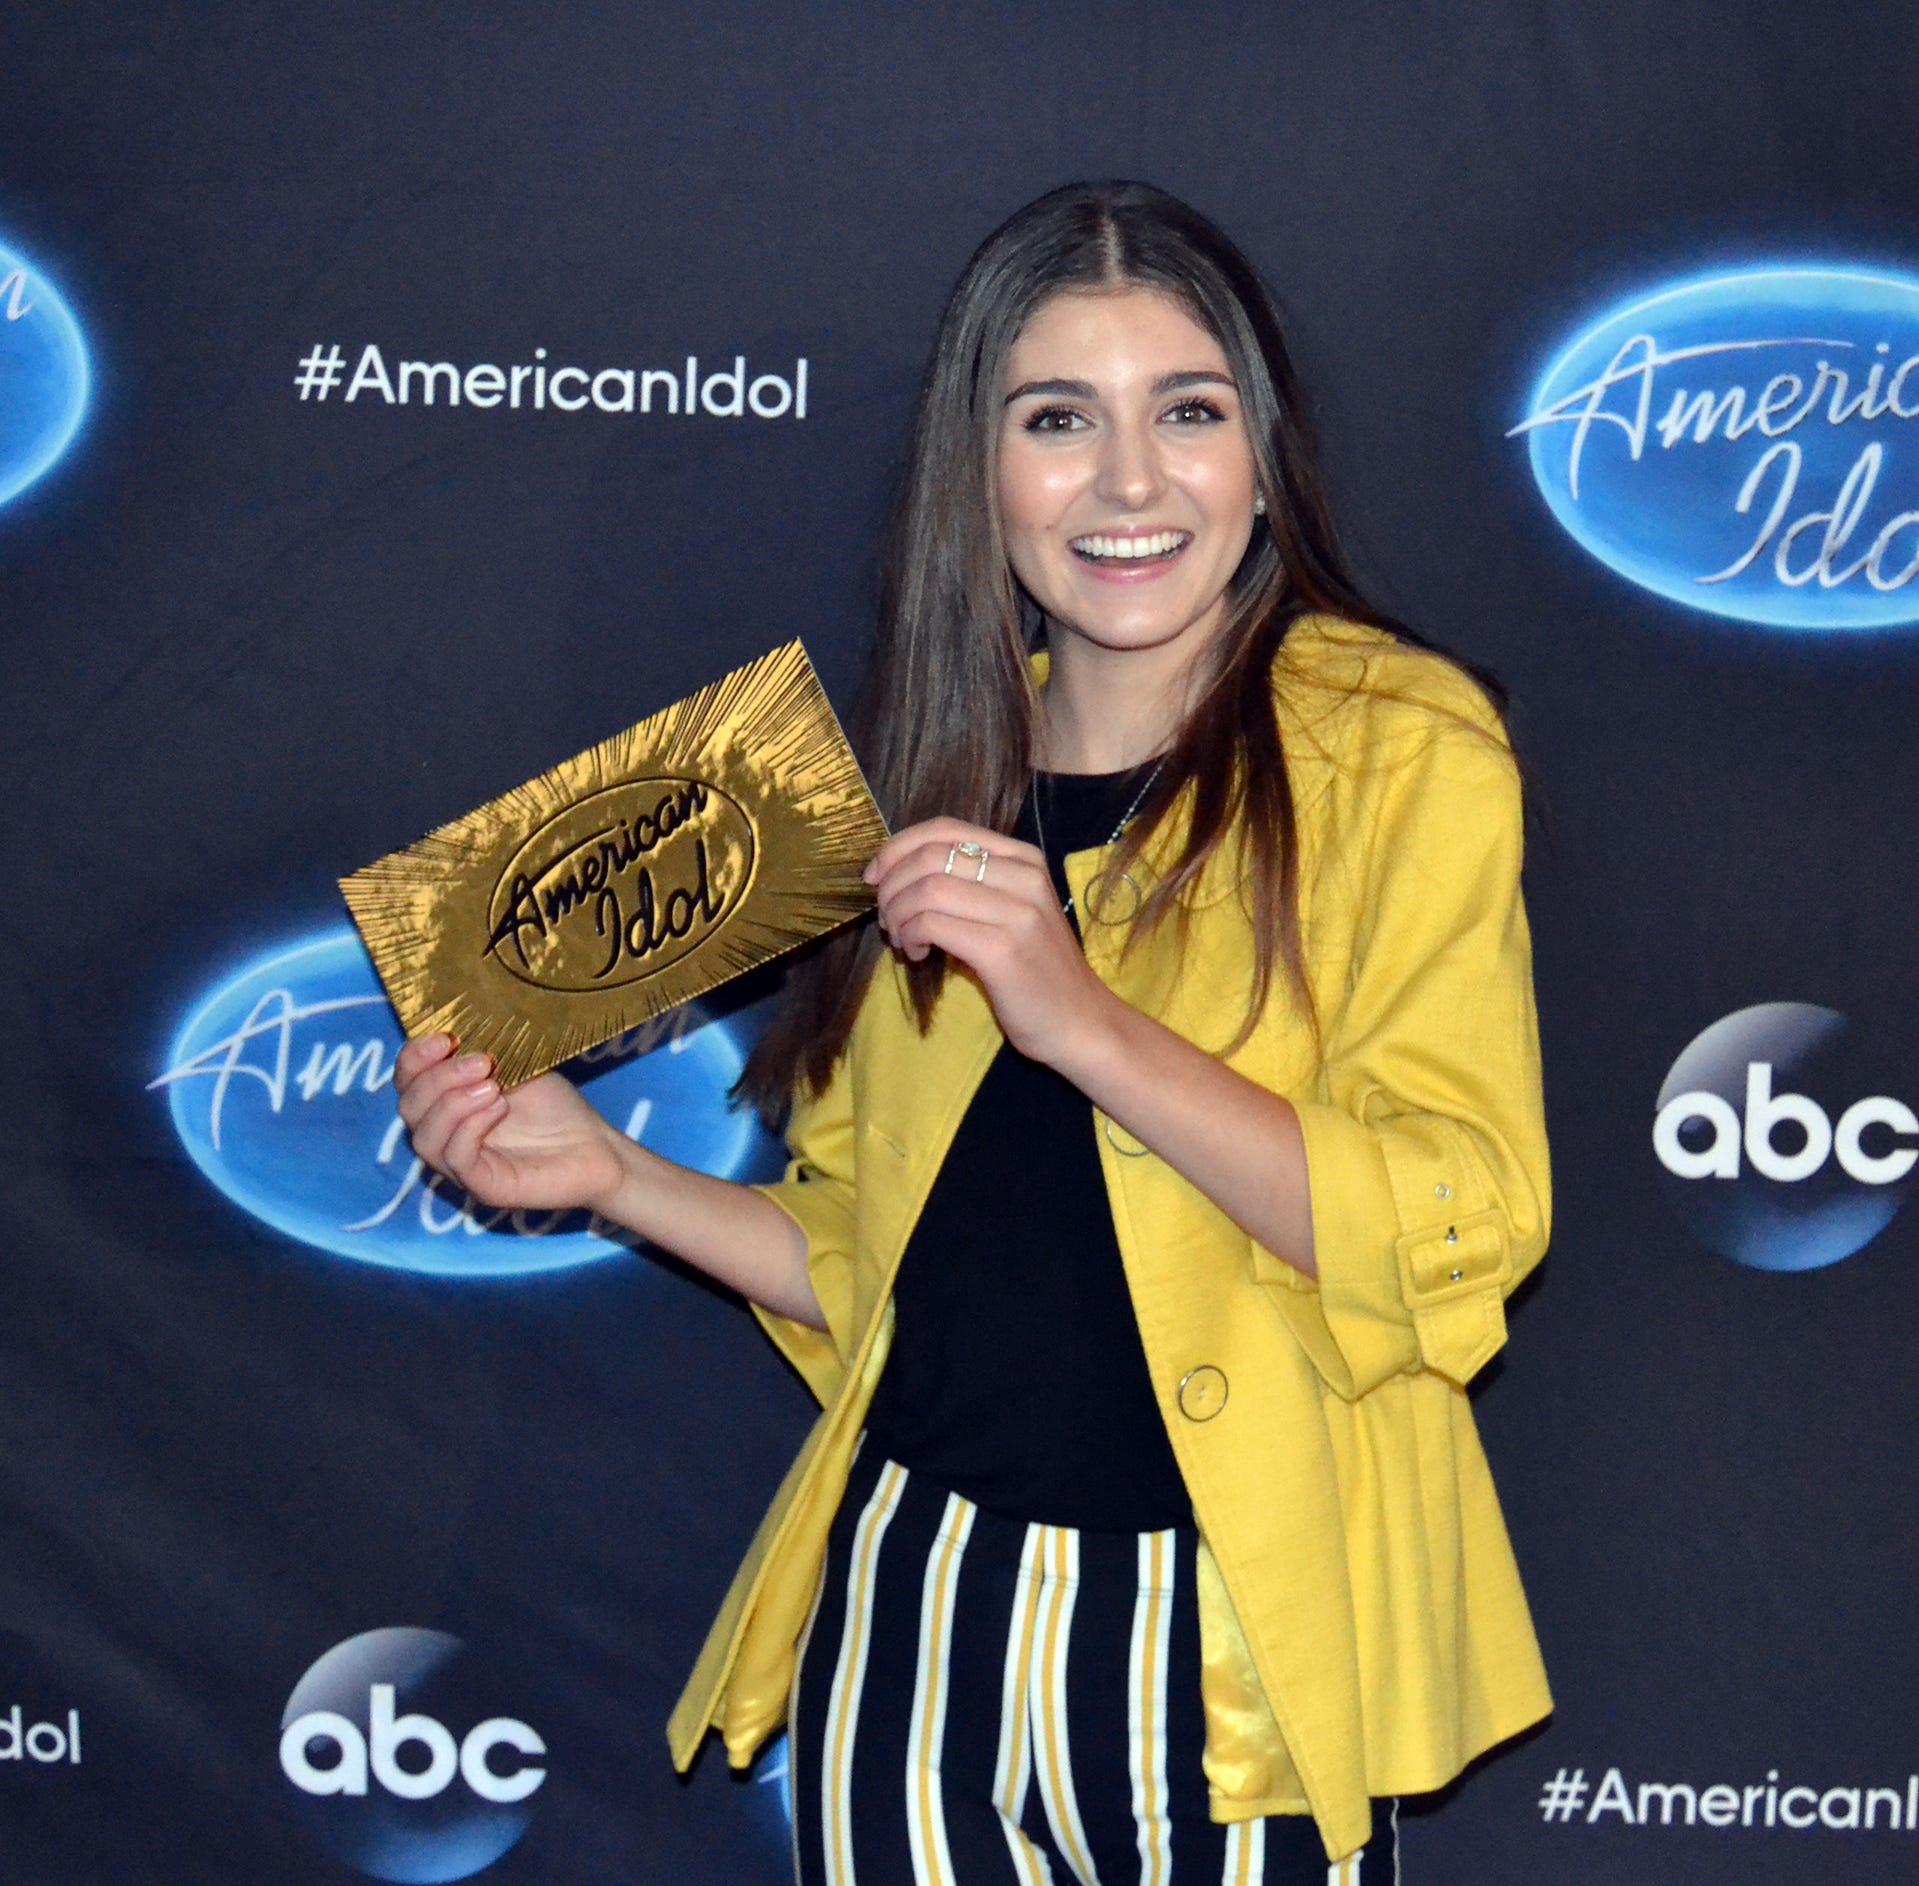 Oshkosh teen Franki Moscato's 'American Idol' journey ends in Hollywood round